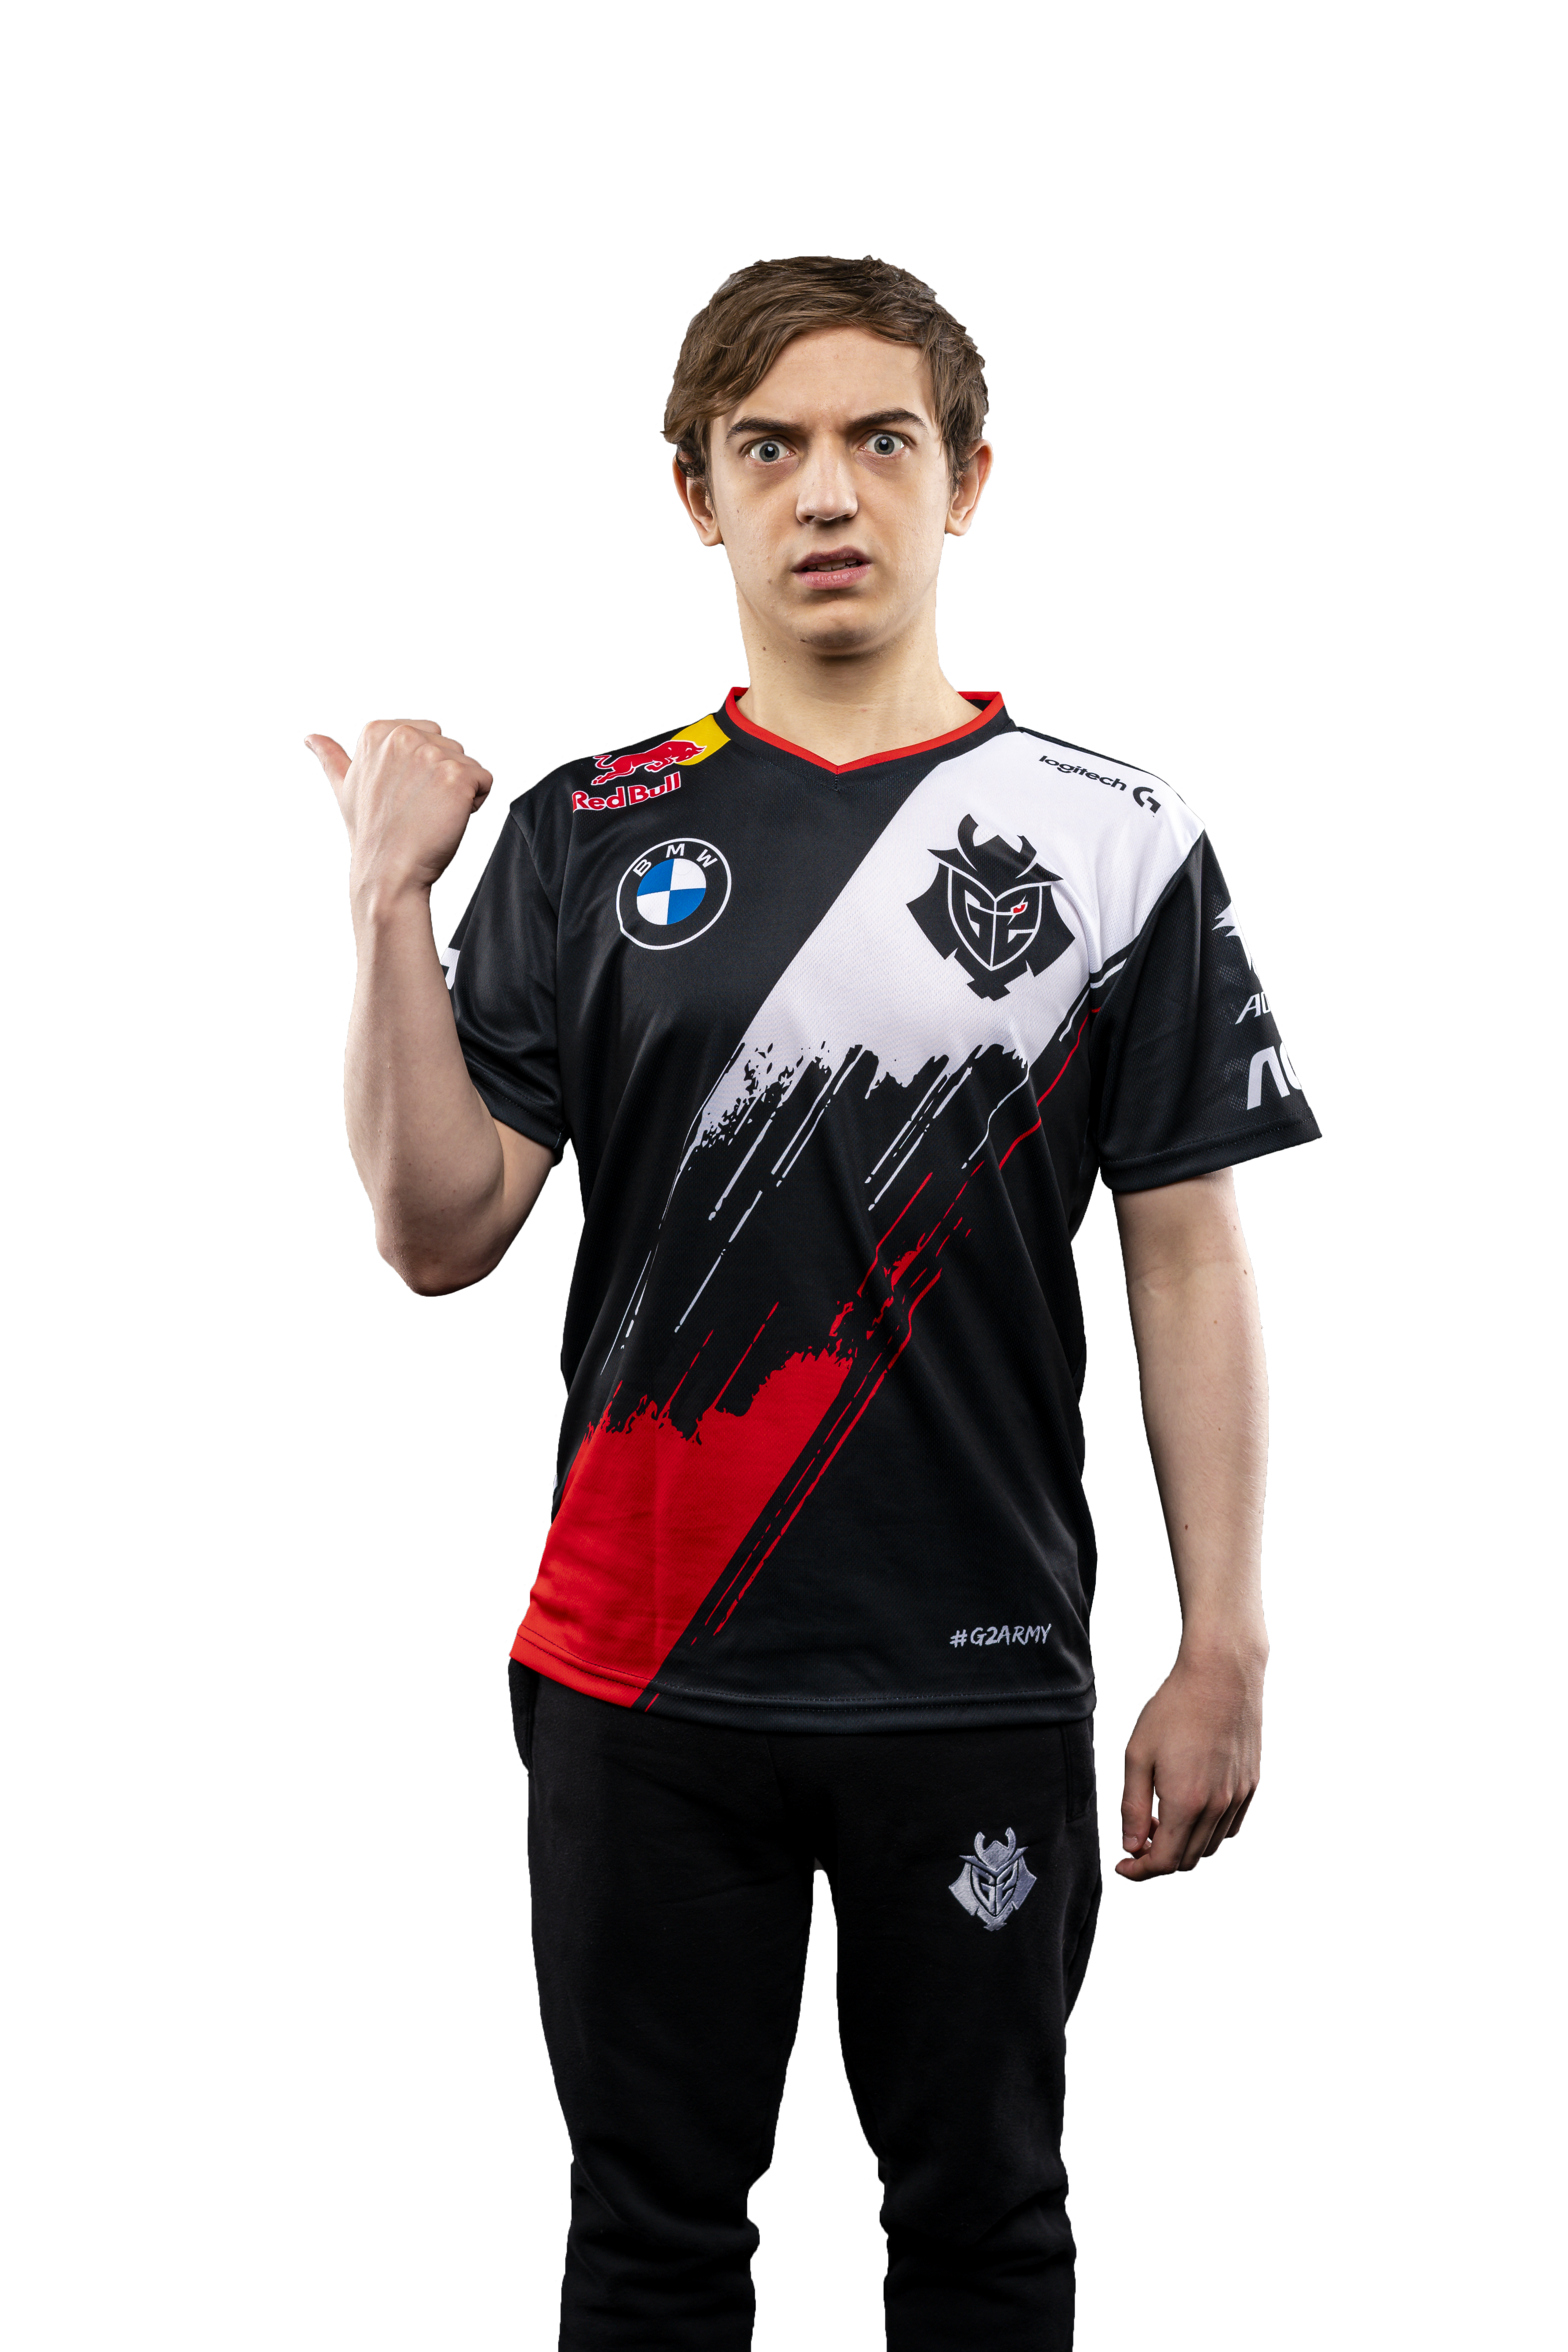 G2 Esports star Caps gestures with his thumb in surprise to an amazing fact about himself